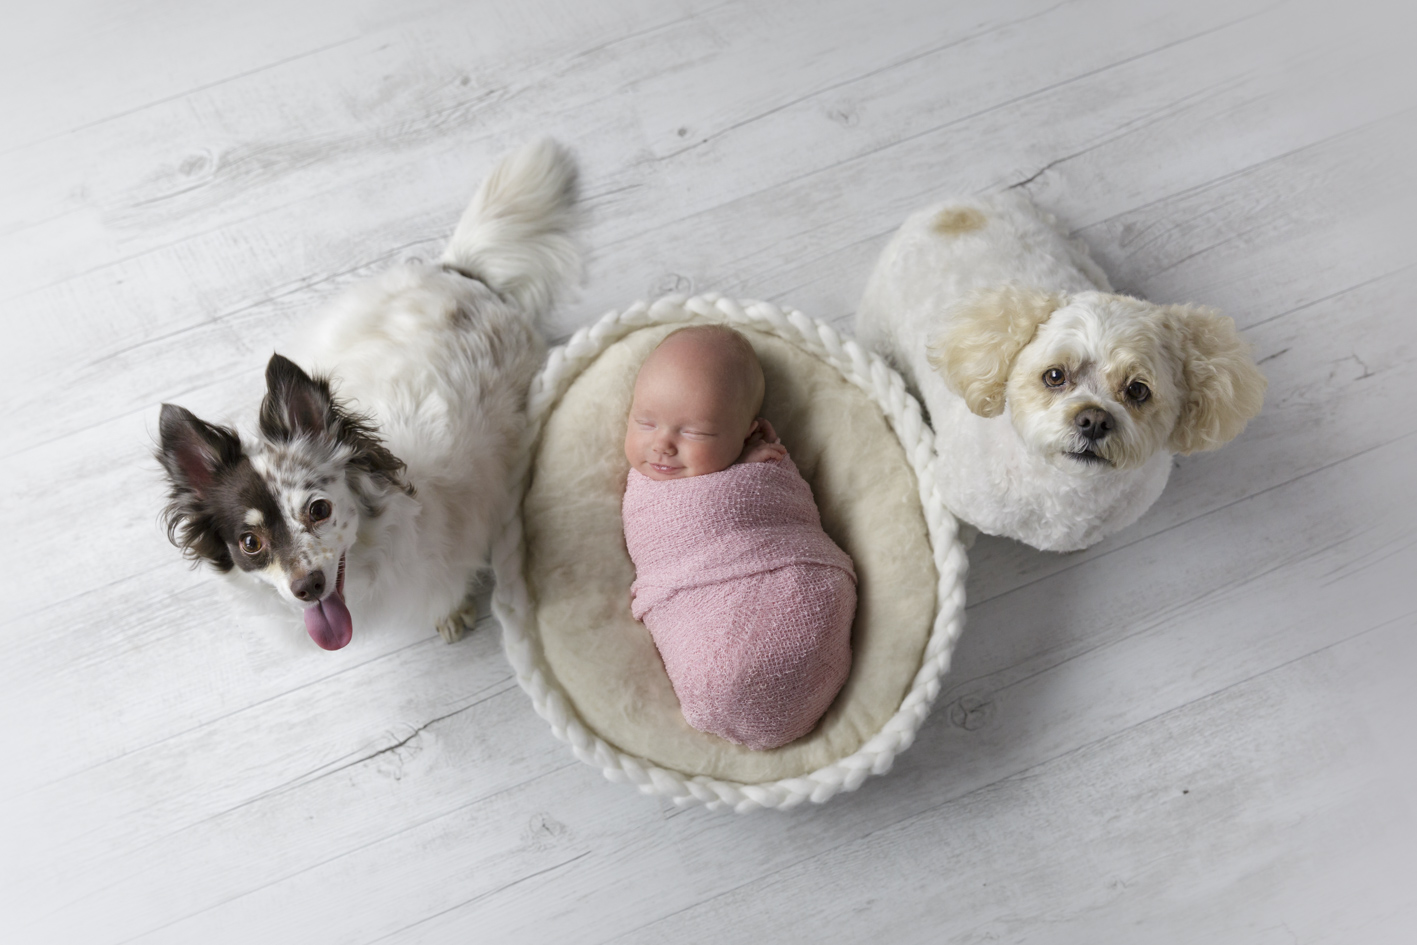 newborn baby with dogs